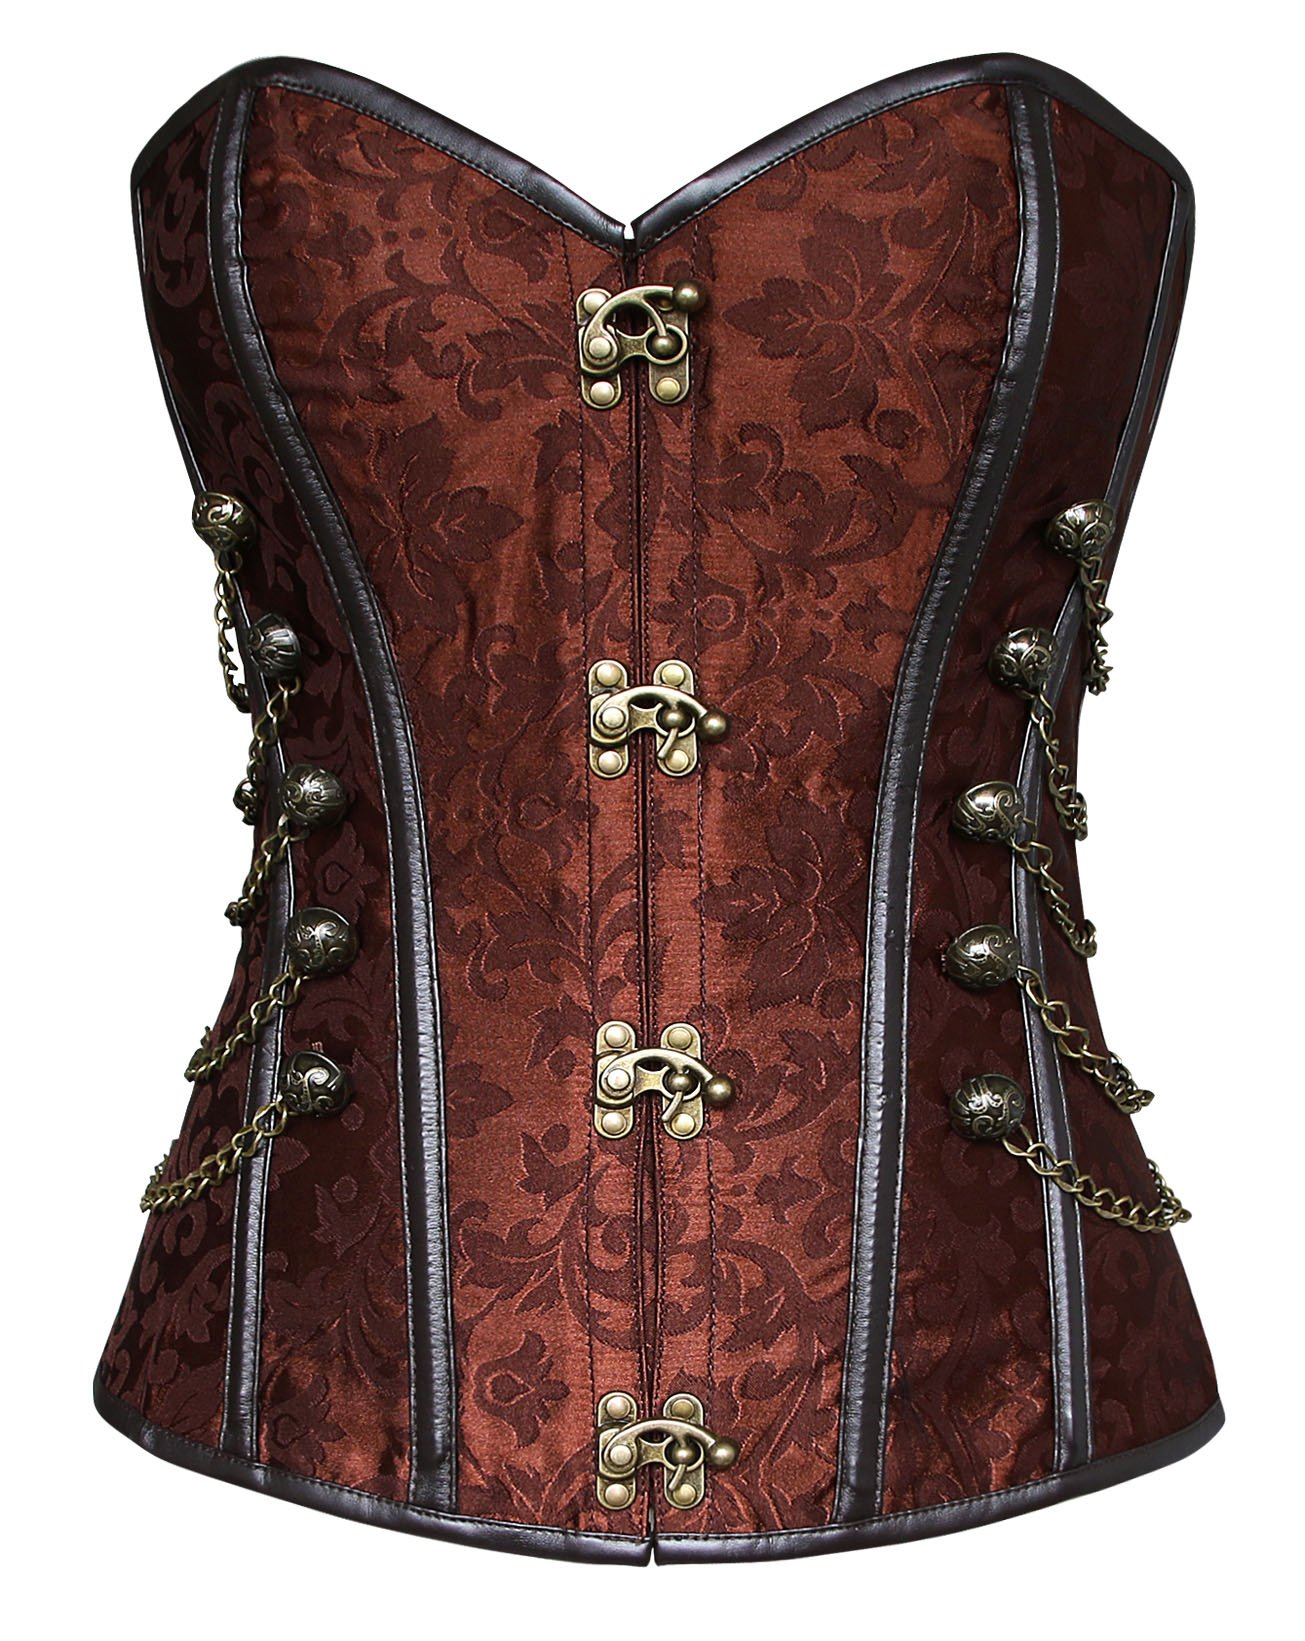 Charmian Women's Spiral Steel Boned Steampunk Gothic Bustier Corset with Chains 3